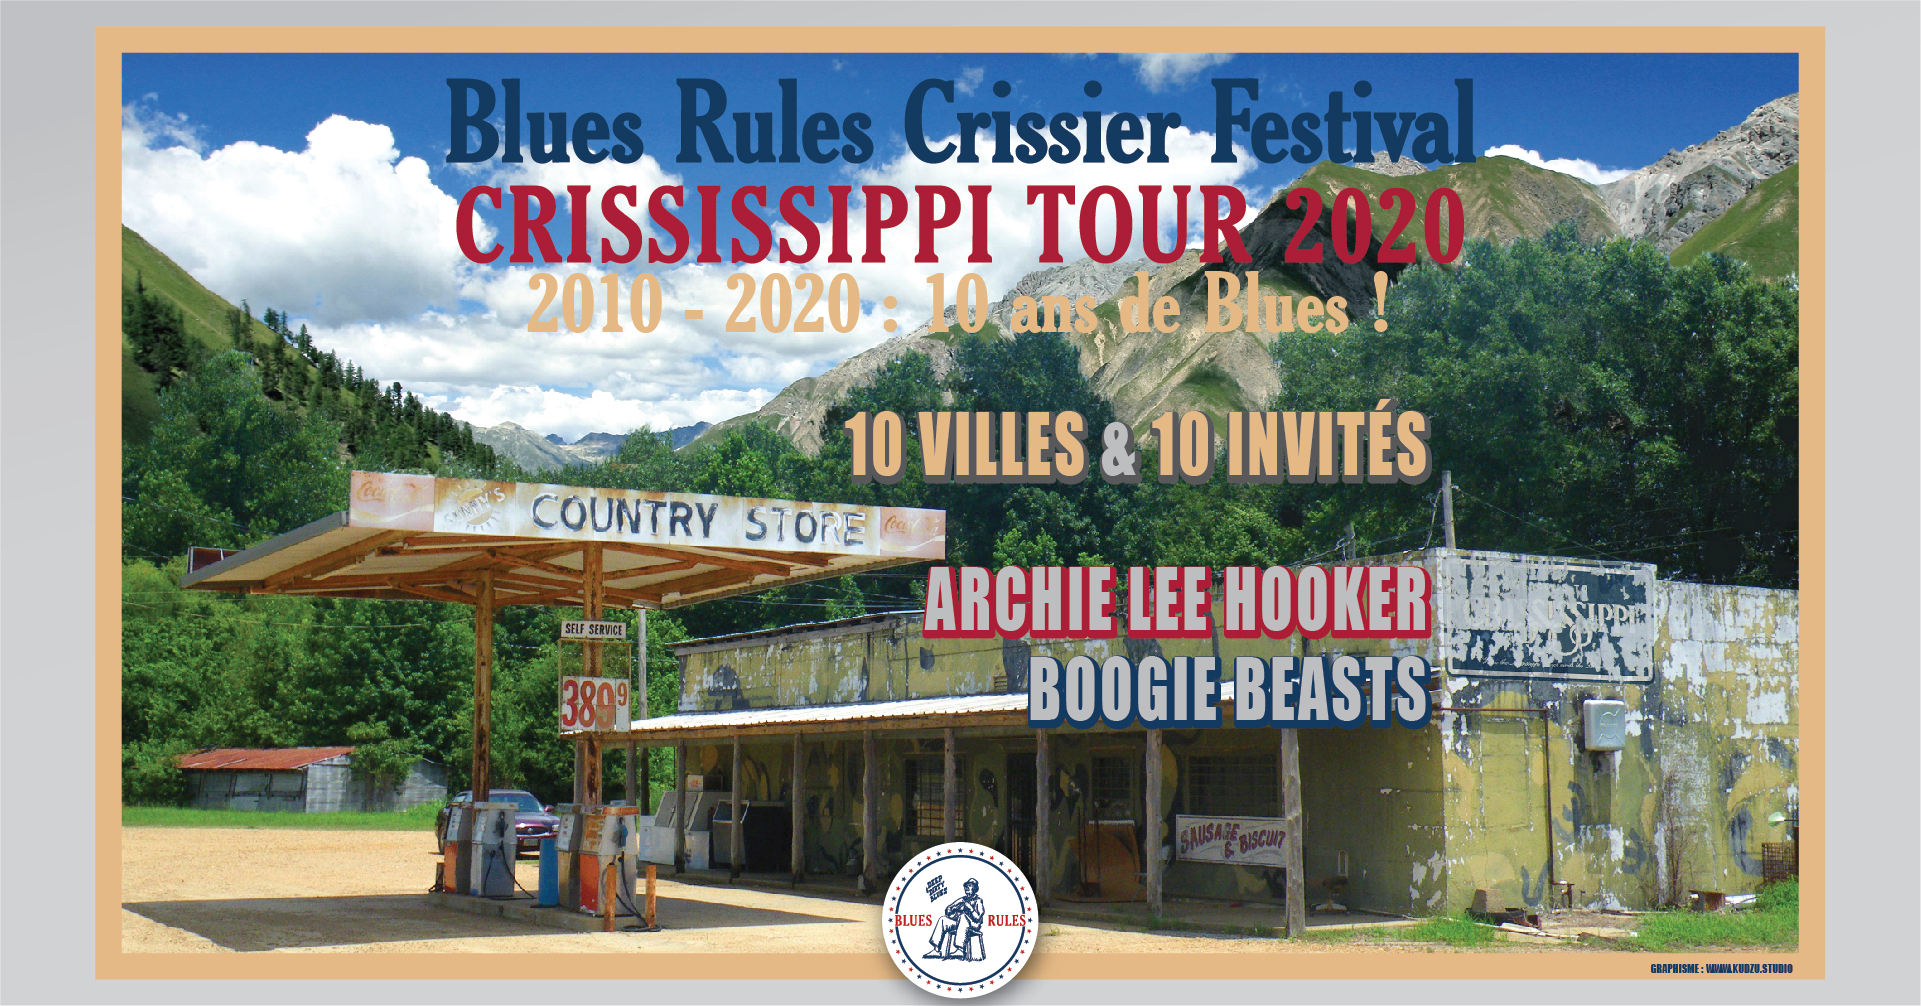 Blues Rules Crississippi Tour 2020